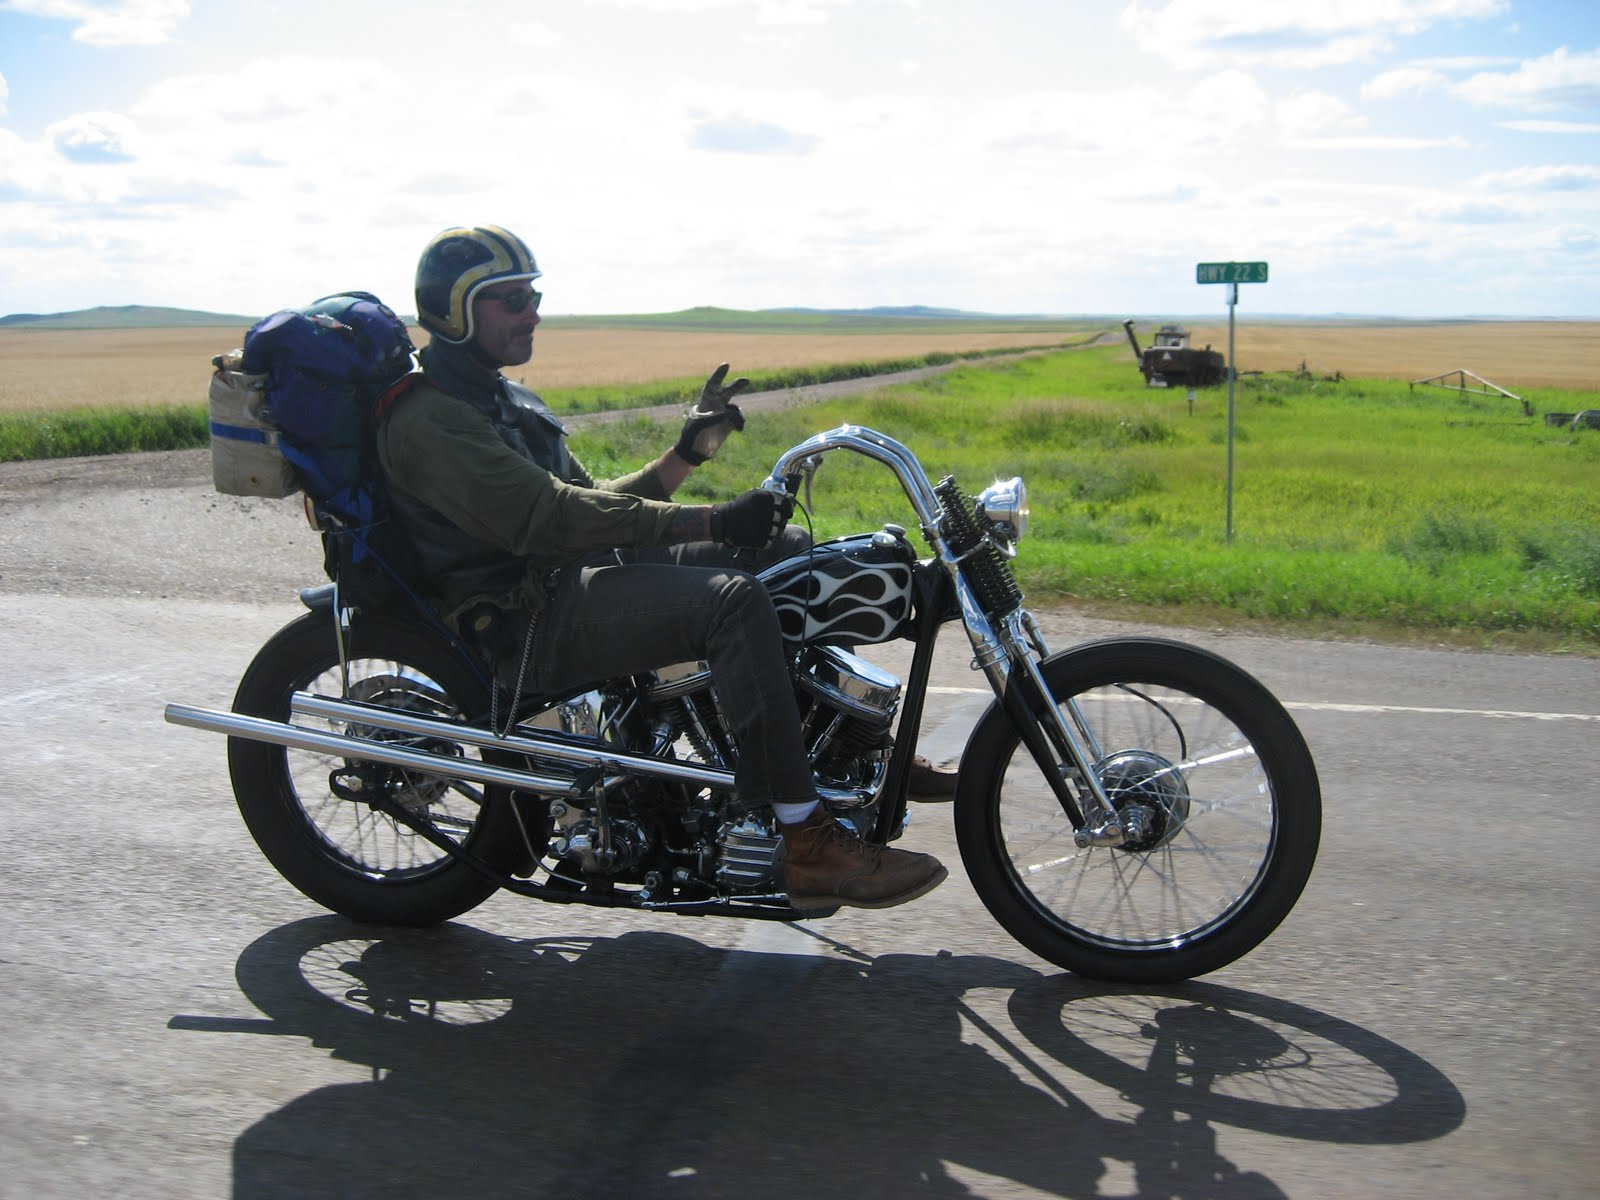 Sturgis Canada http://lovecycles.blogspot.com/2010/08/robin-and-63-canada-to-sturgis-and-back.html